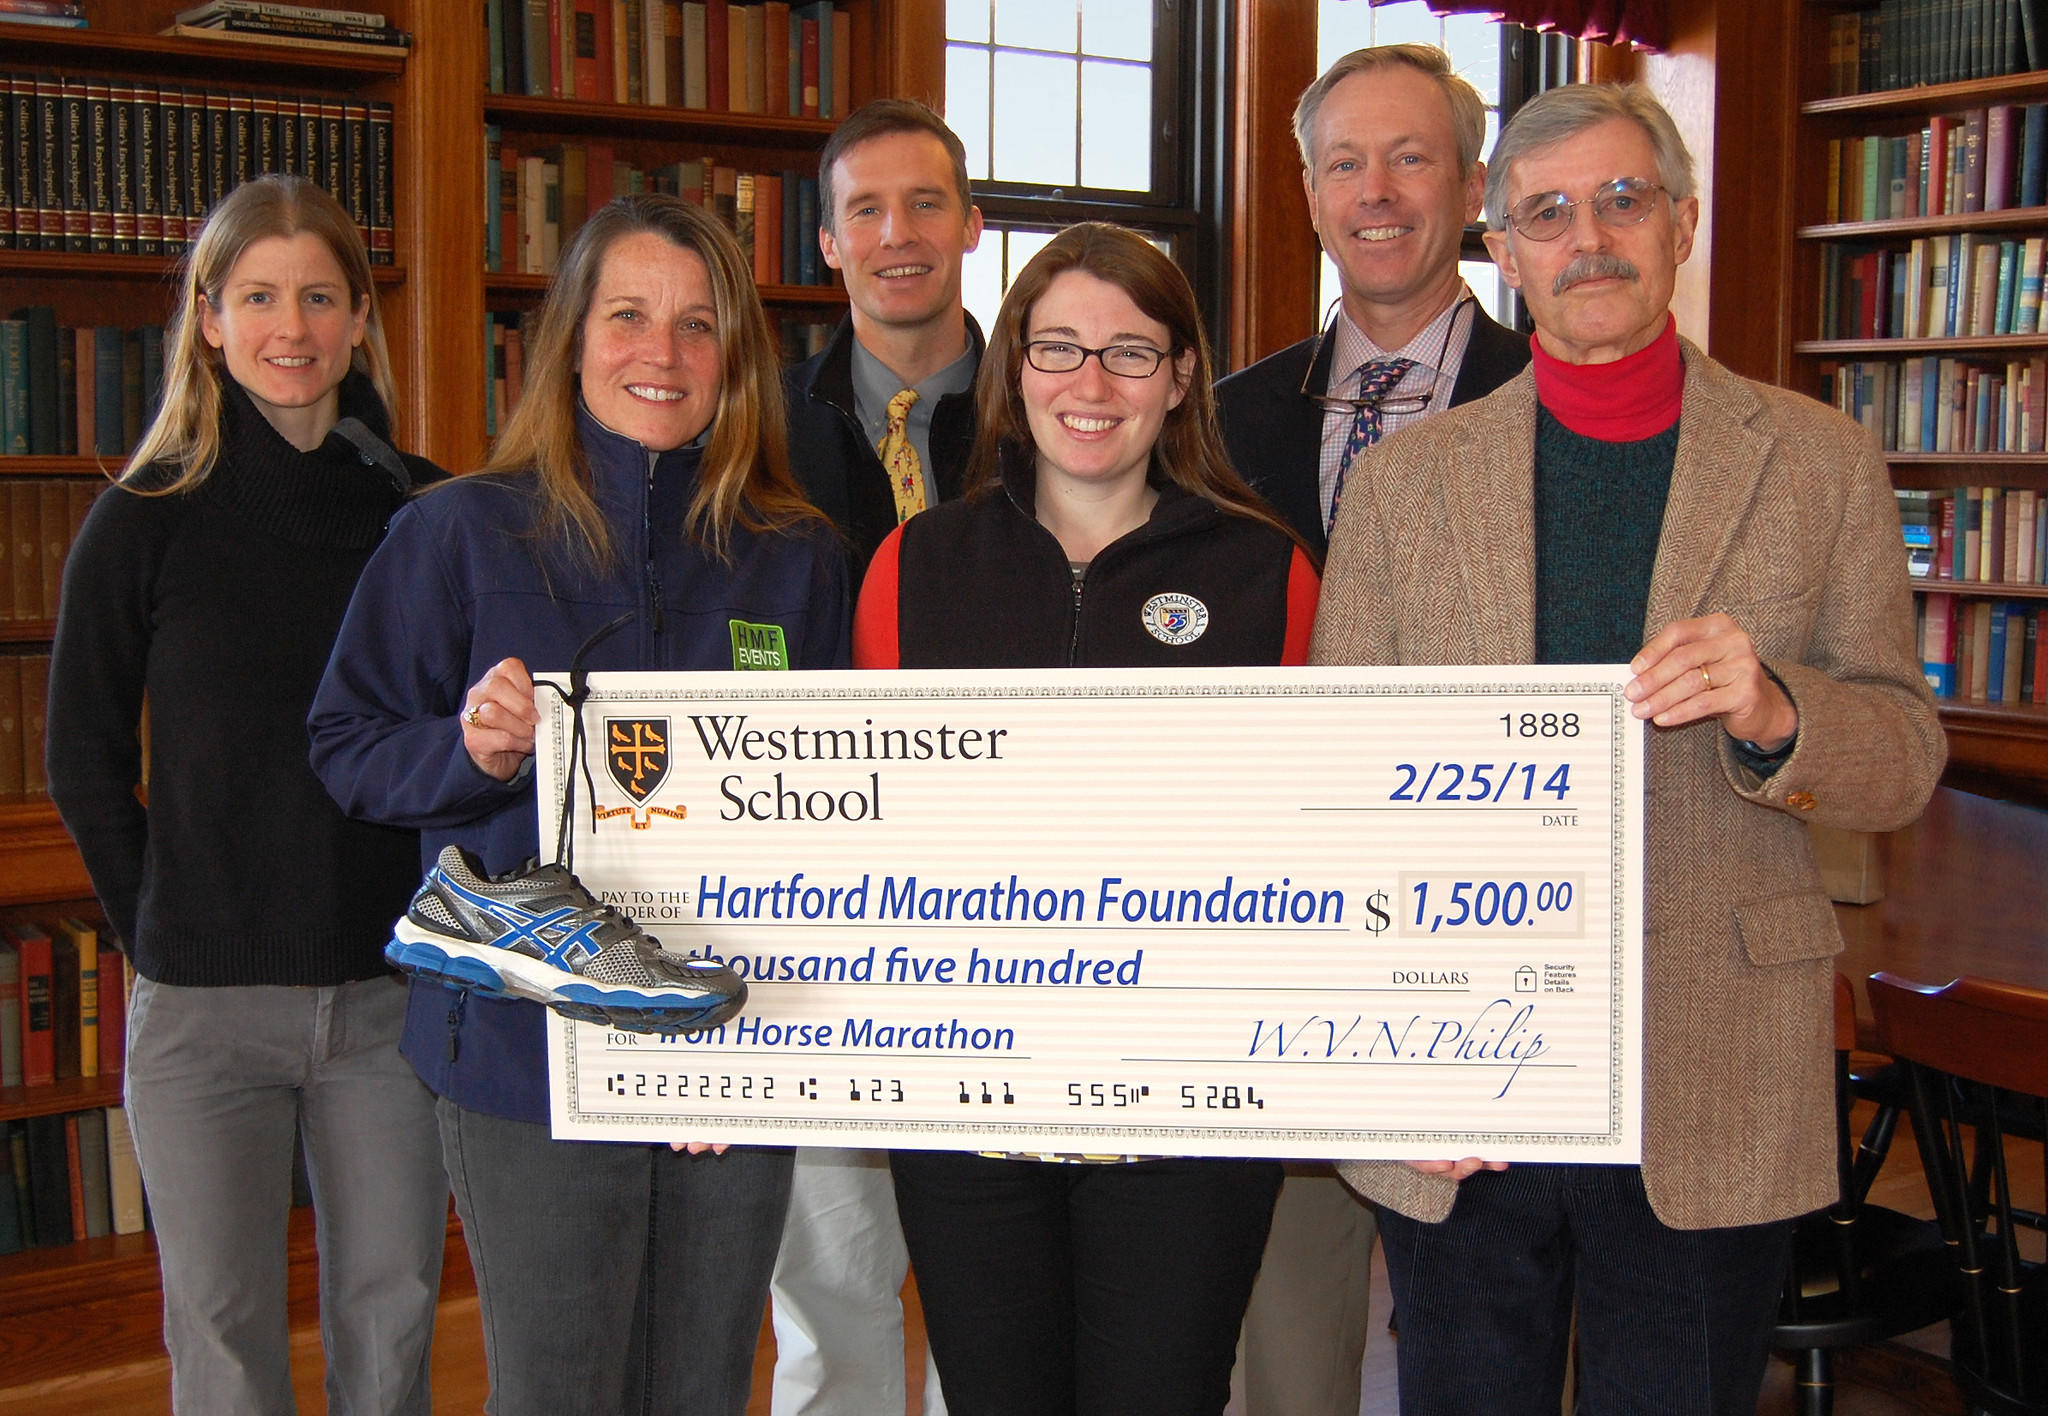 With Hartford Marathon Foundation's Sarah Roberson, second from left, are five Westminster faculty members who are runners and members of the planning team. From left to right: Amanda Hollebone, Robertson, Mark de Kanter, Maureen Lamb, David Werner and Morgan Shipway.